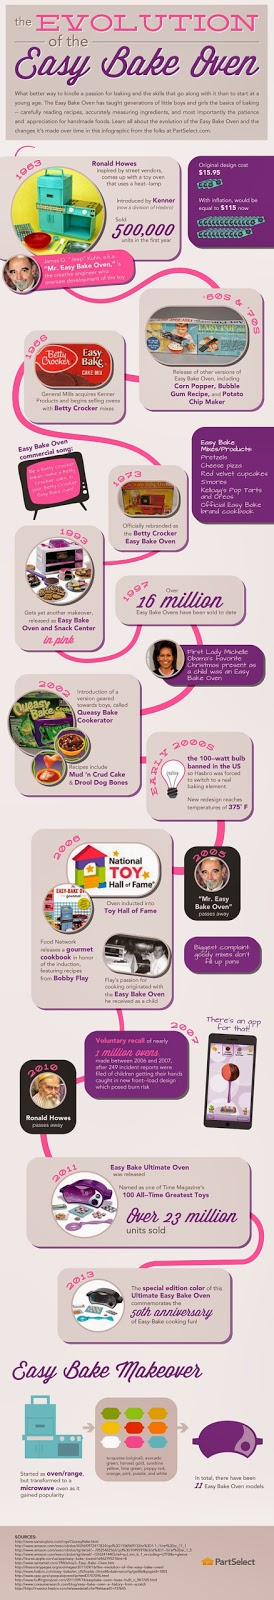 Evolution of Easy Bake Oven infographic